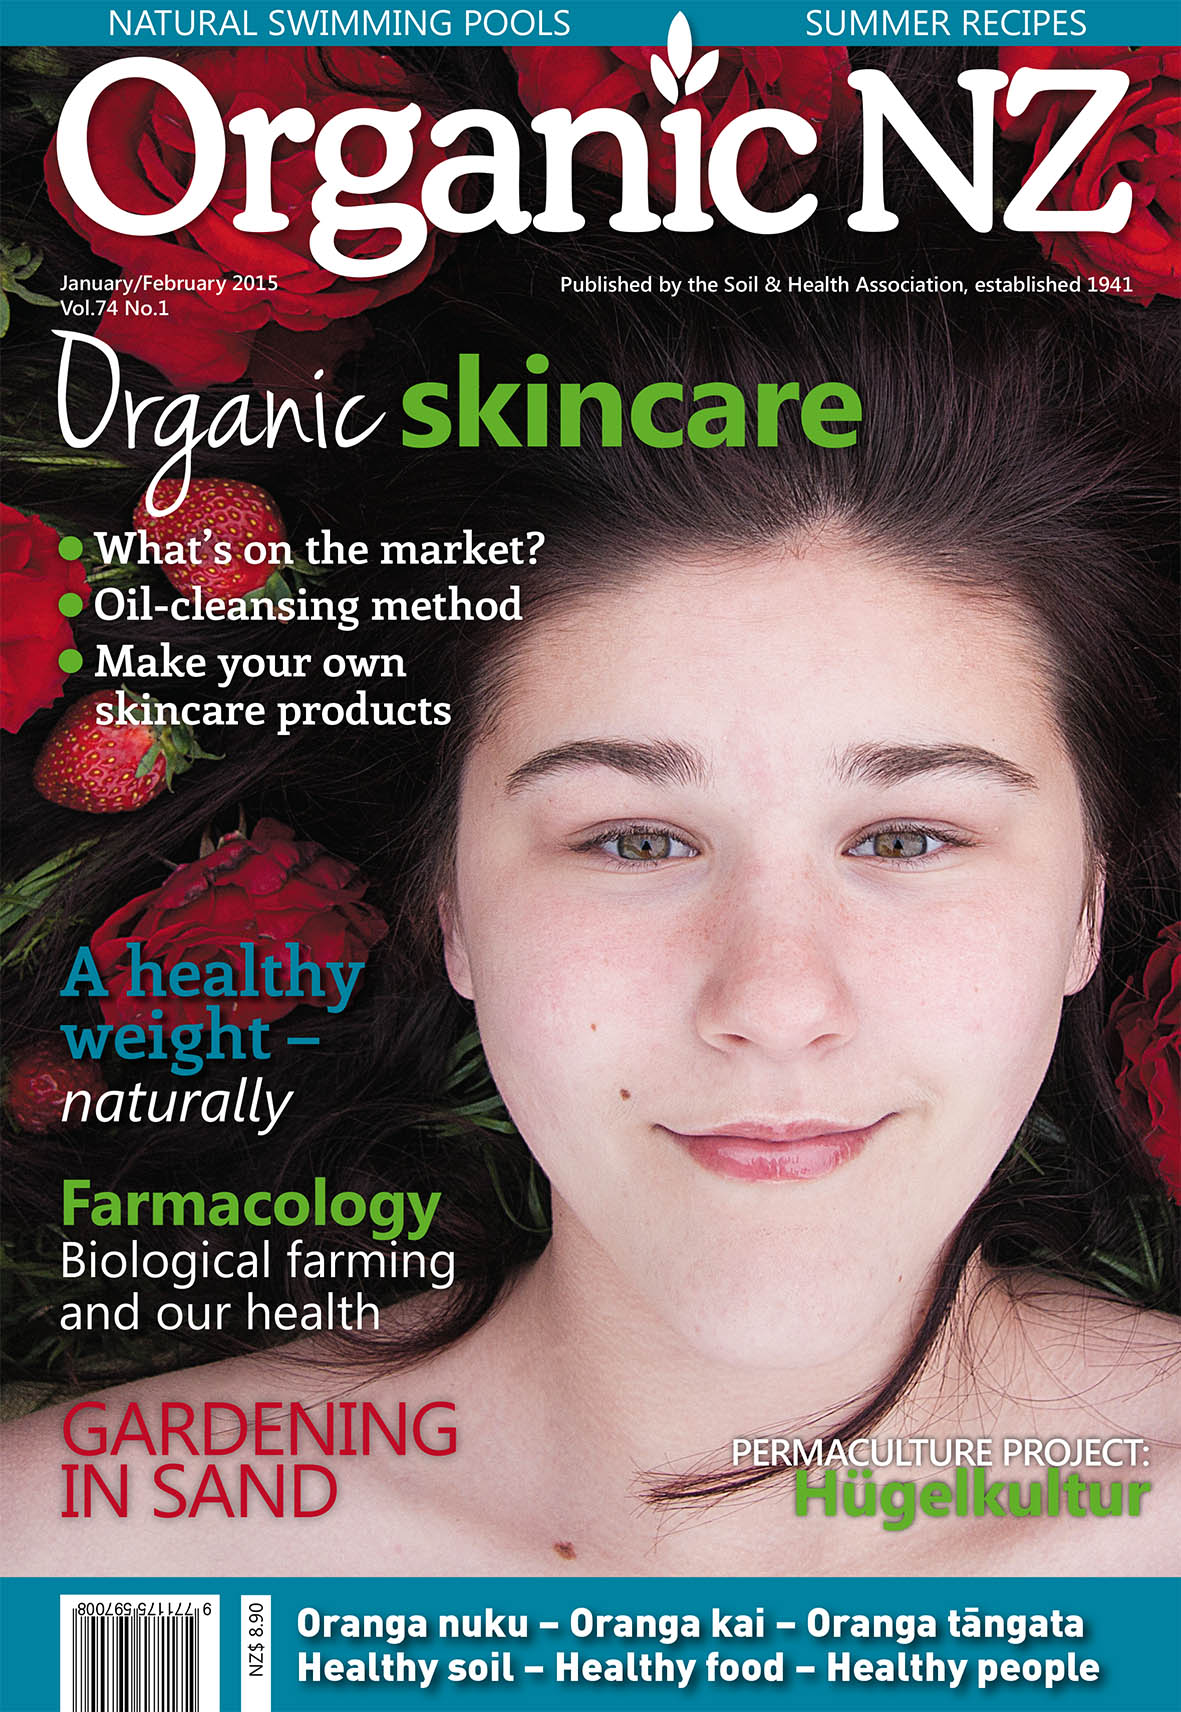 Organic NZ January/February 2015 cover